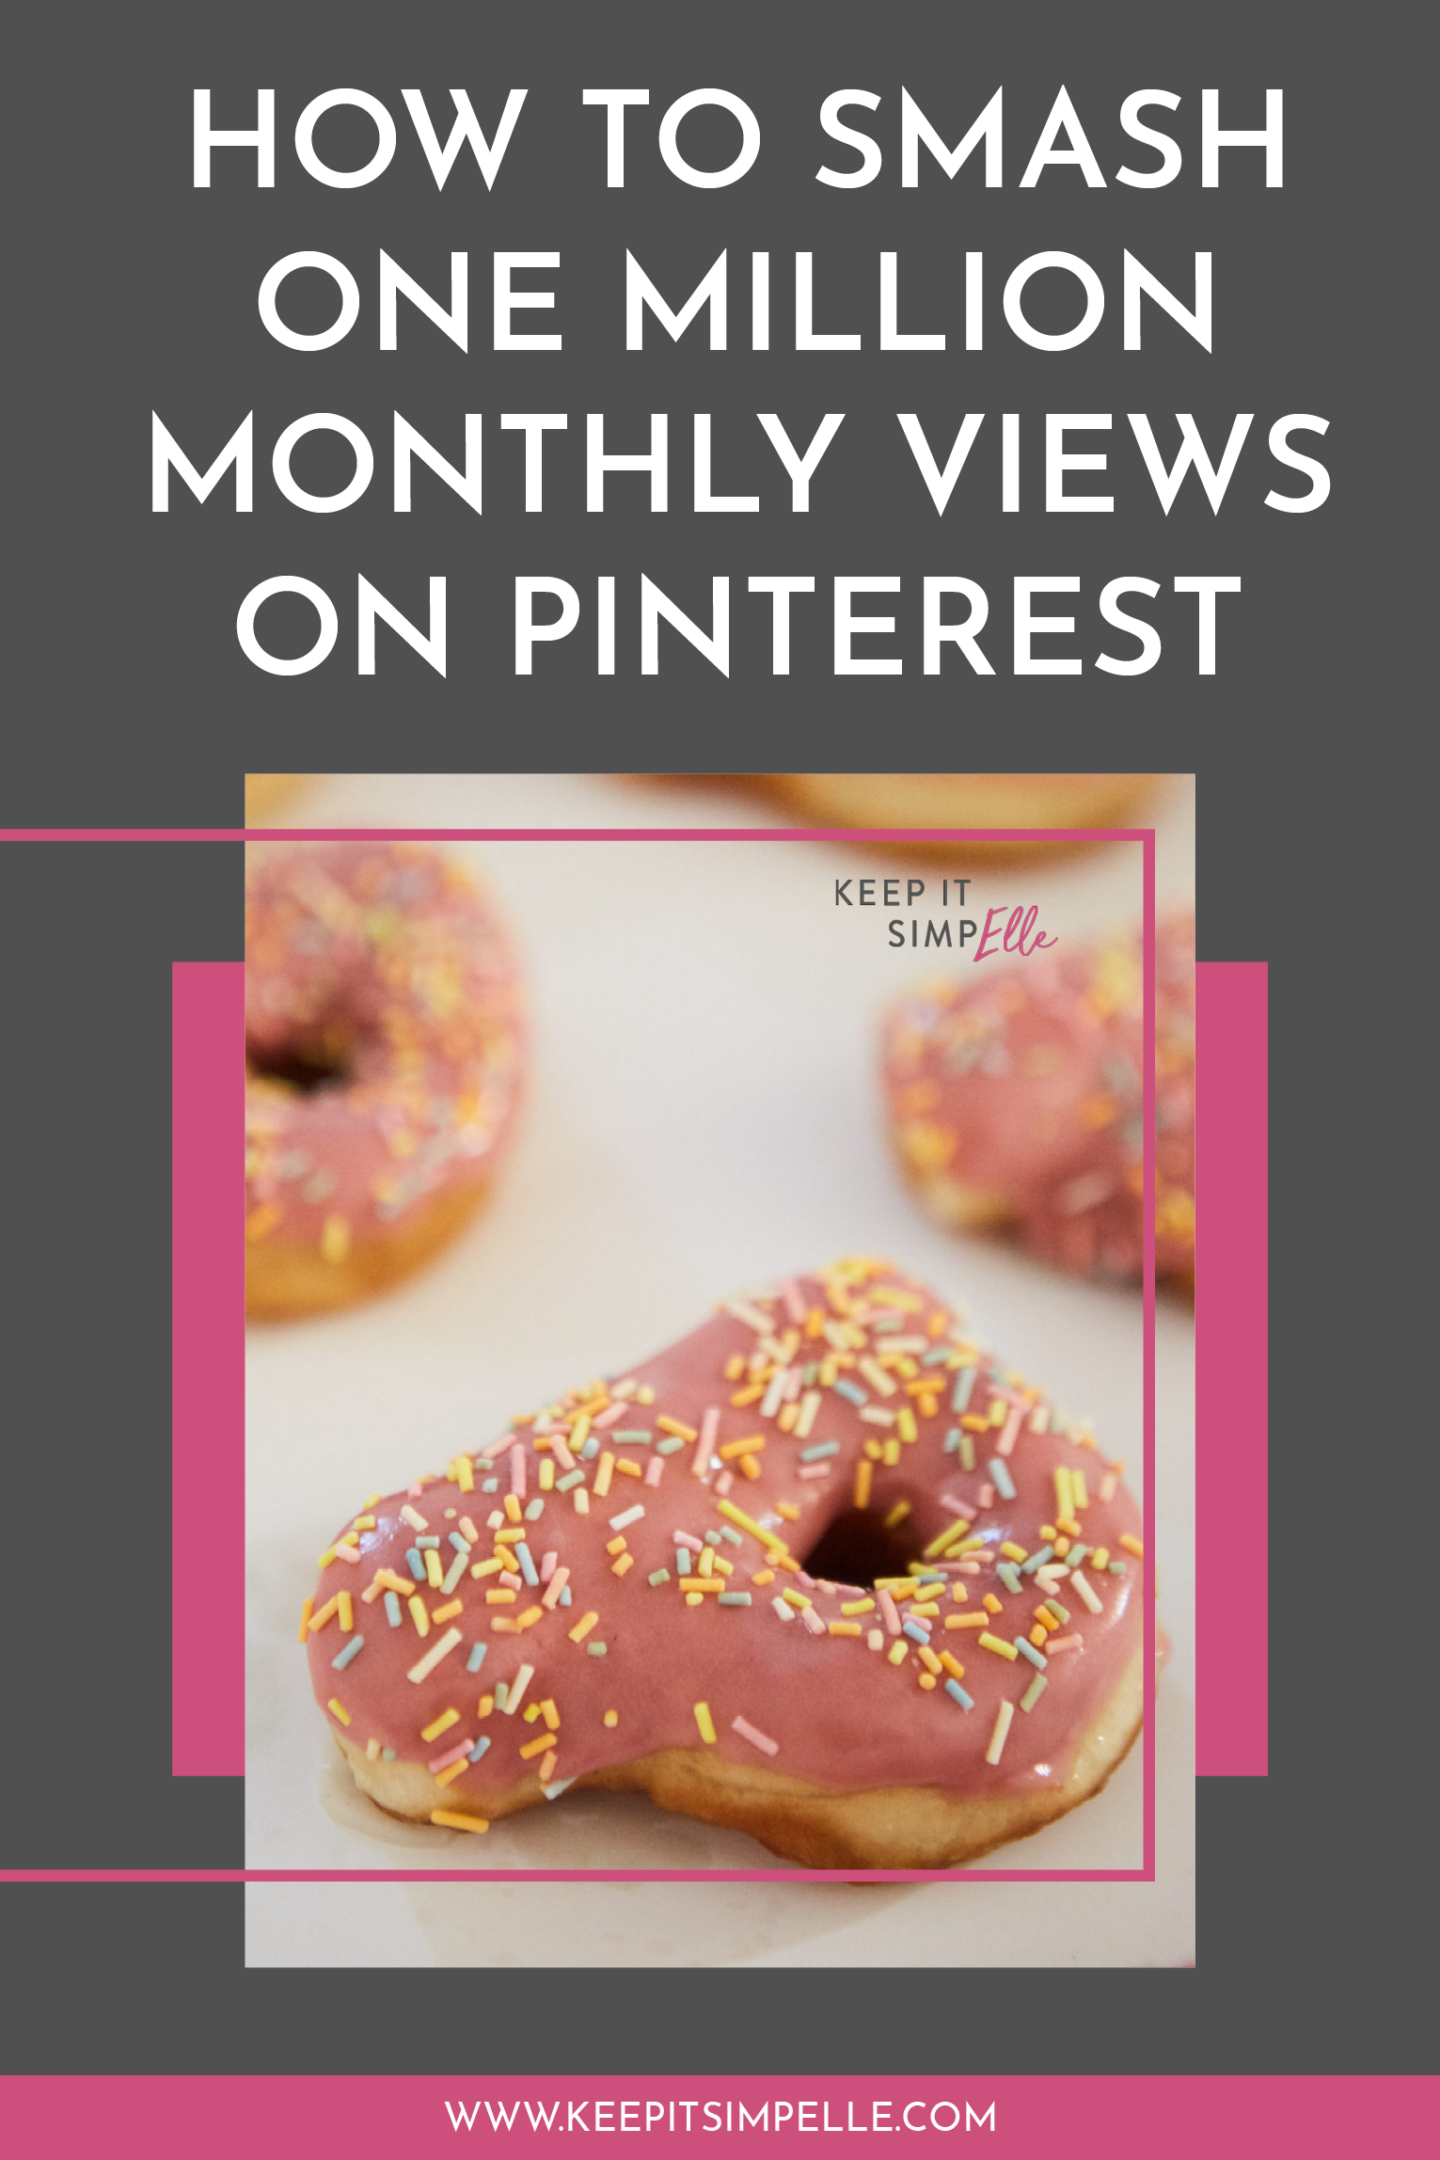 How To Smash One Million Monthly Views On Pinterest!